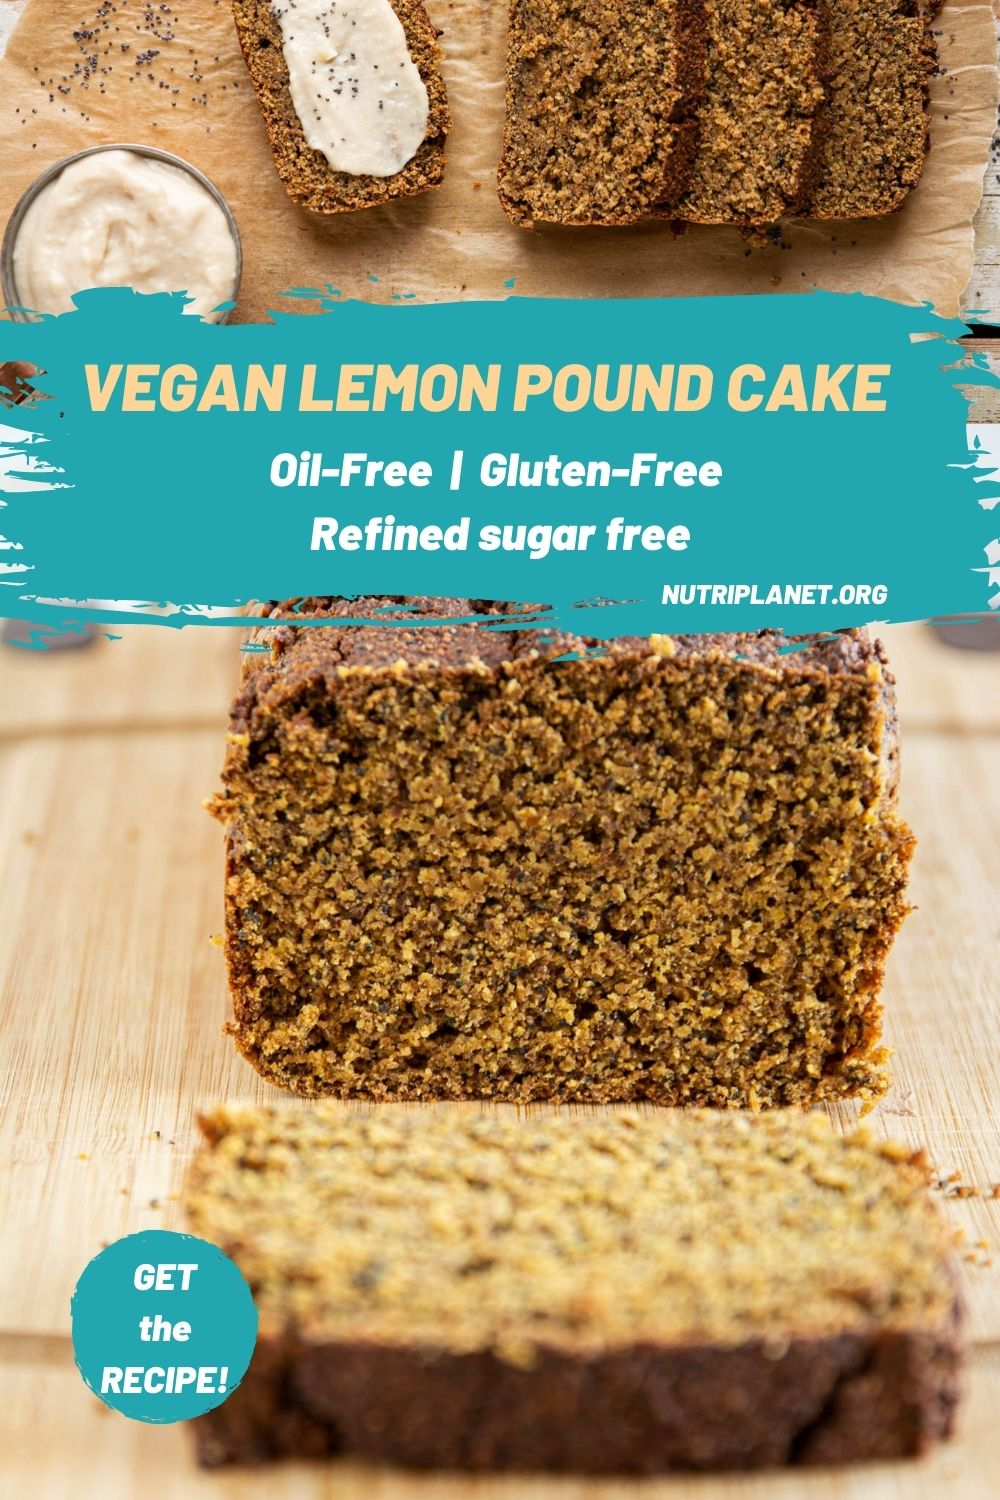 Learn how to make refined sugar free, oil-free and gluten-free vegan lemon pound cake with poppy seeds and vegan lemon custard cream. Suitable on Candida diet.